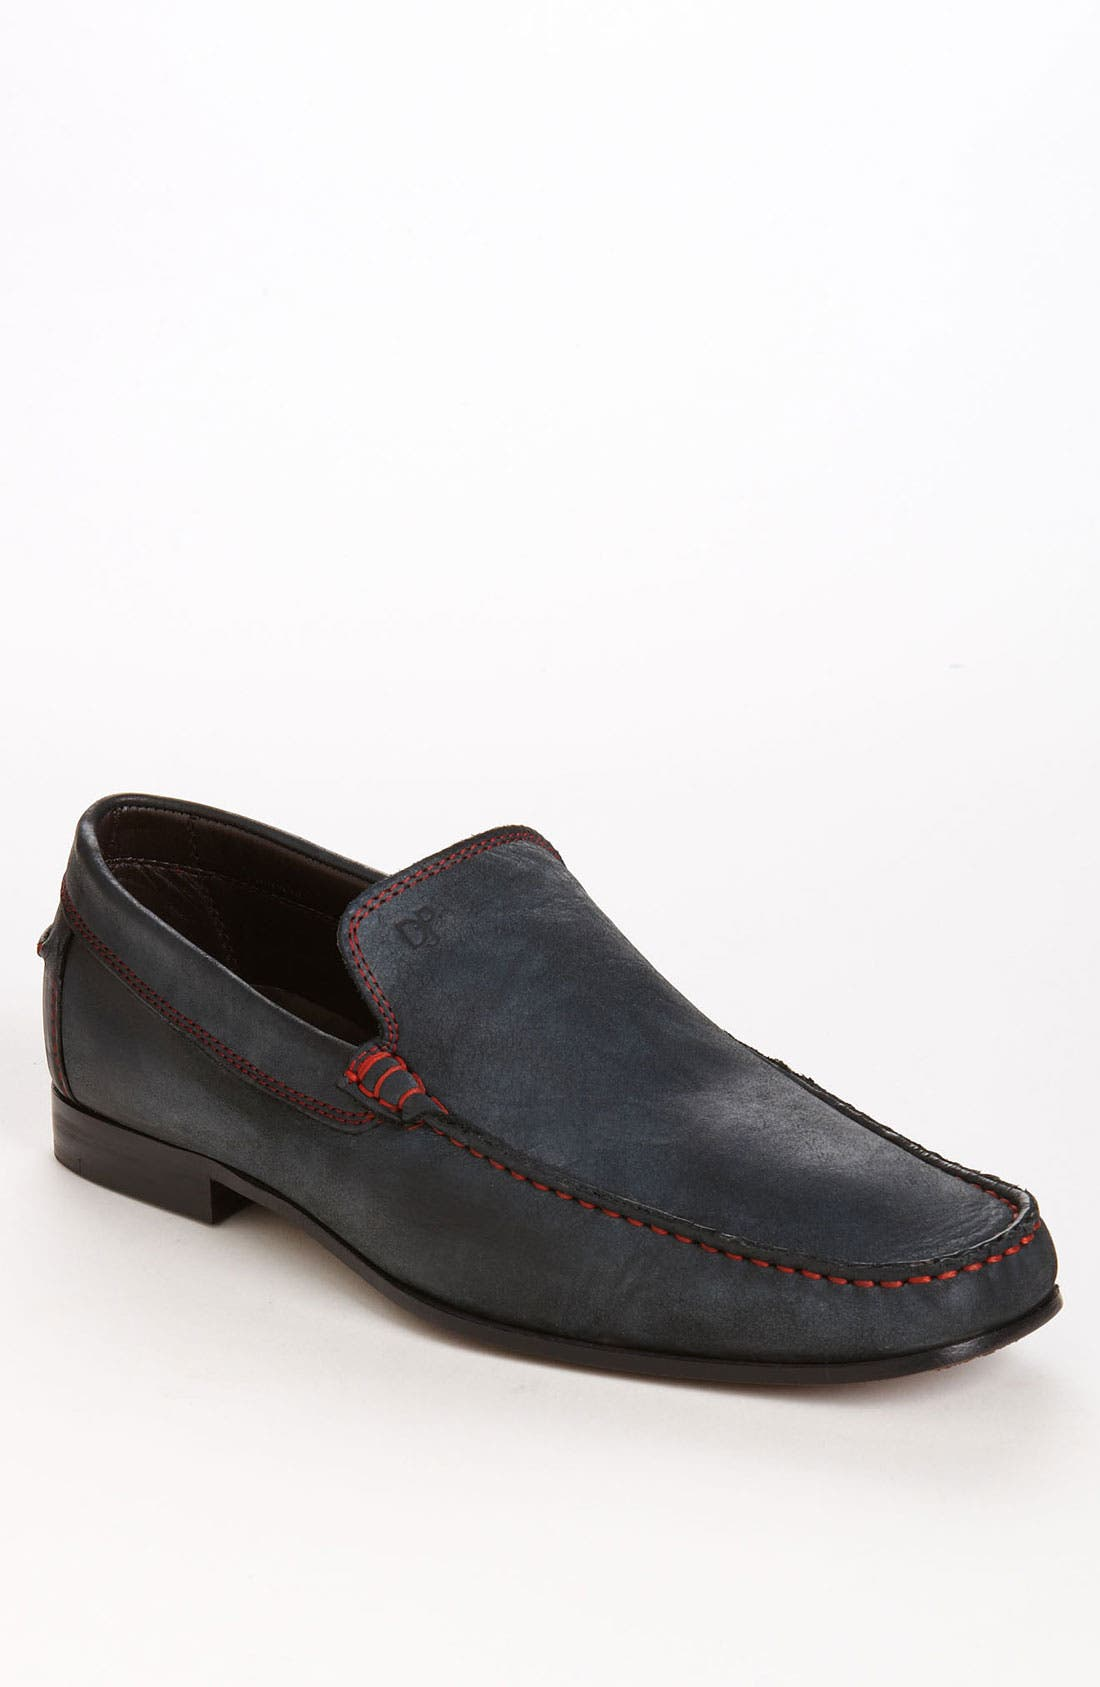 Main Image - Donald J Pliner 'Daryl' Loafer (Online Only)